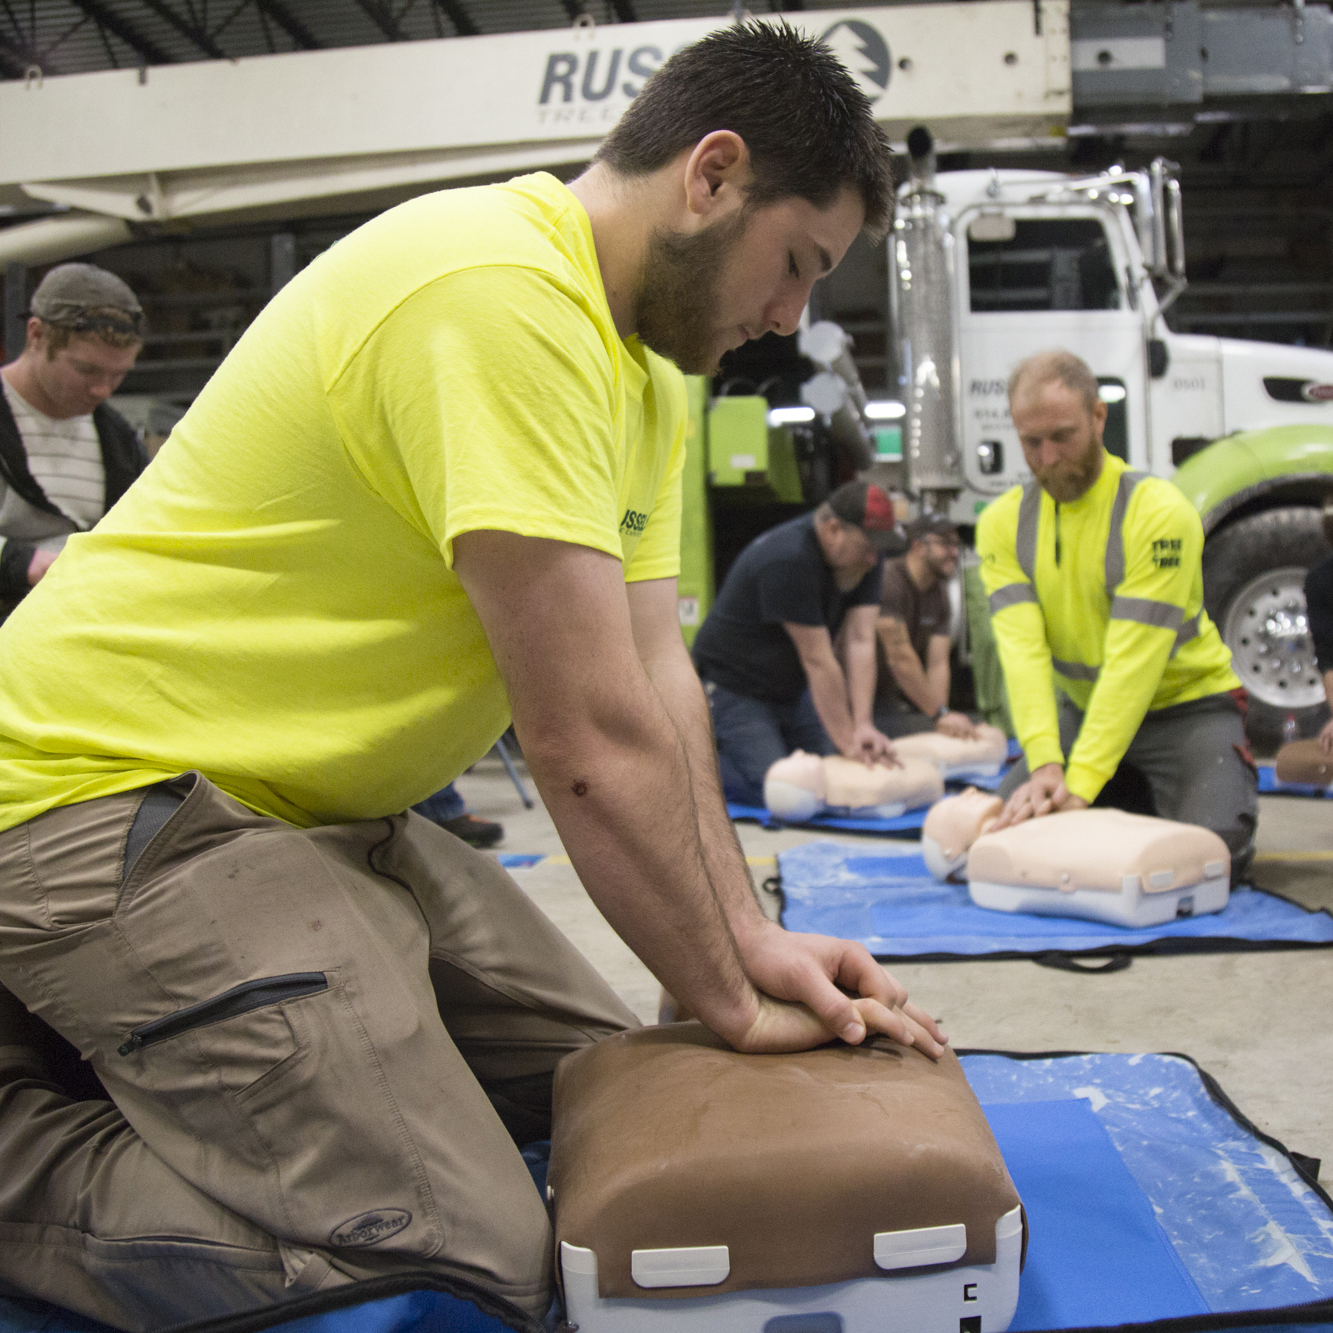 First Aid & CPR - Crew is First-Aid and CPR trained through the American Heart Association